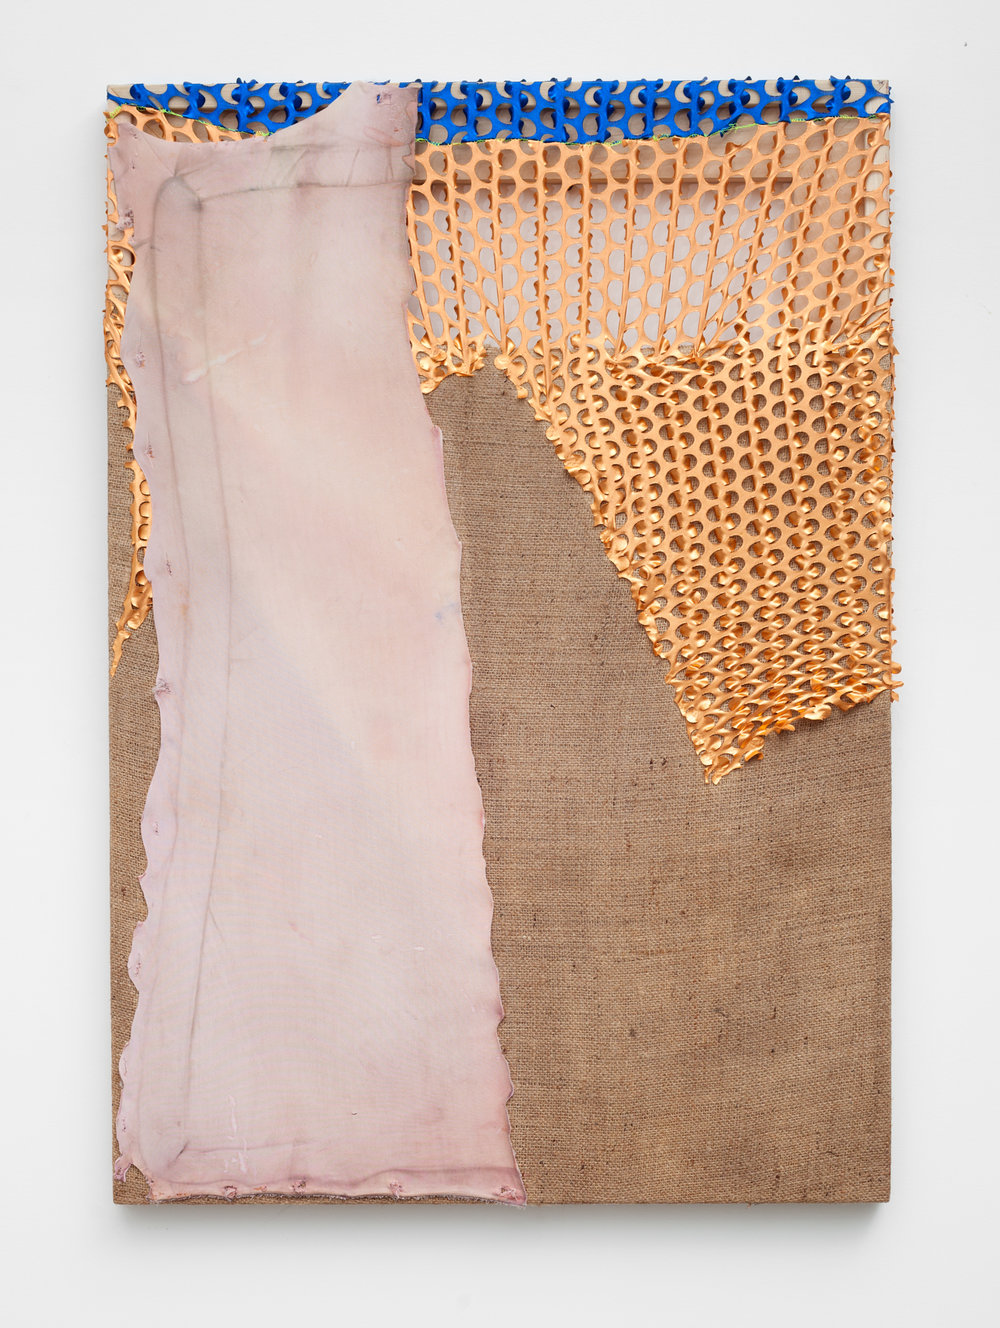 Screen   dyed neoprene, metallic spandex and thread on treated and stretched burlap over wood frame  28 x 40 inches   2016  Photo by Maggie Shannon